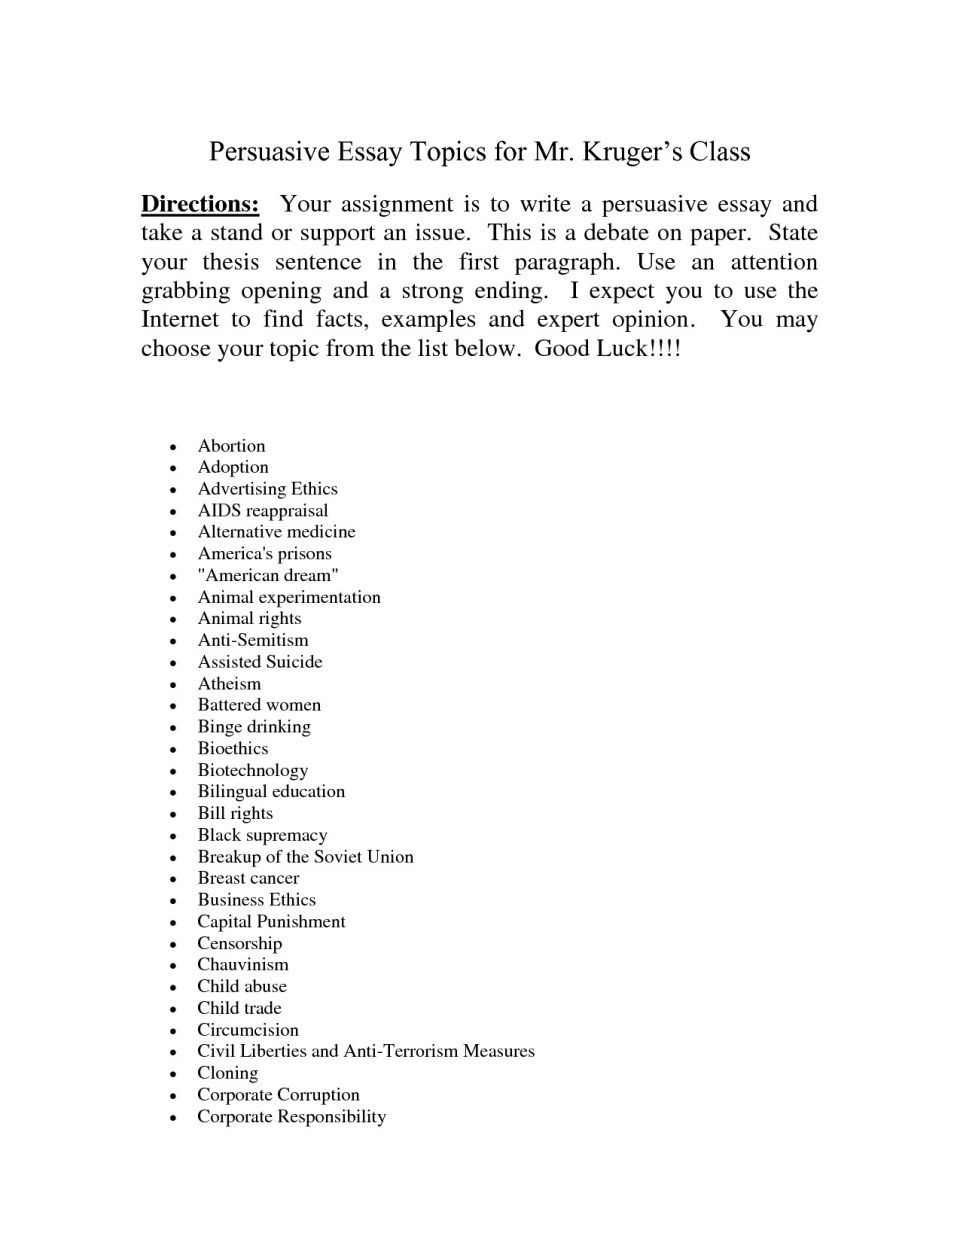 008 Topic For Essay Barca Fontanacountryinn Within Good Persuasive Narrative Topics To Write Abo Easy About Personal Descriptivearch Paper Informative Synthesis College 960x1242 Striking Research Business On Ethics Law Class Full